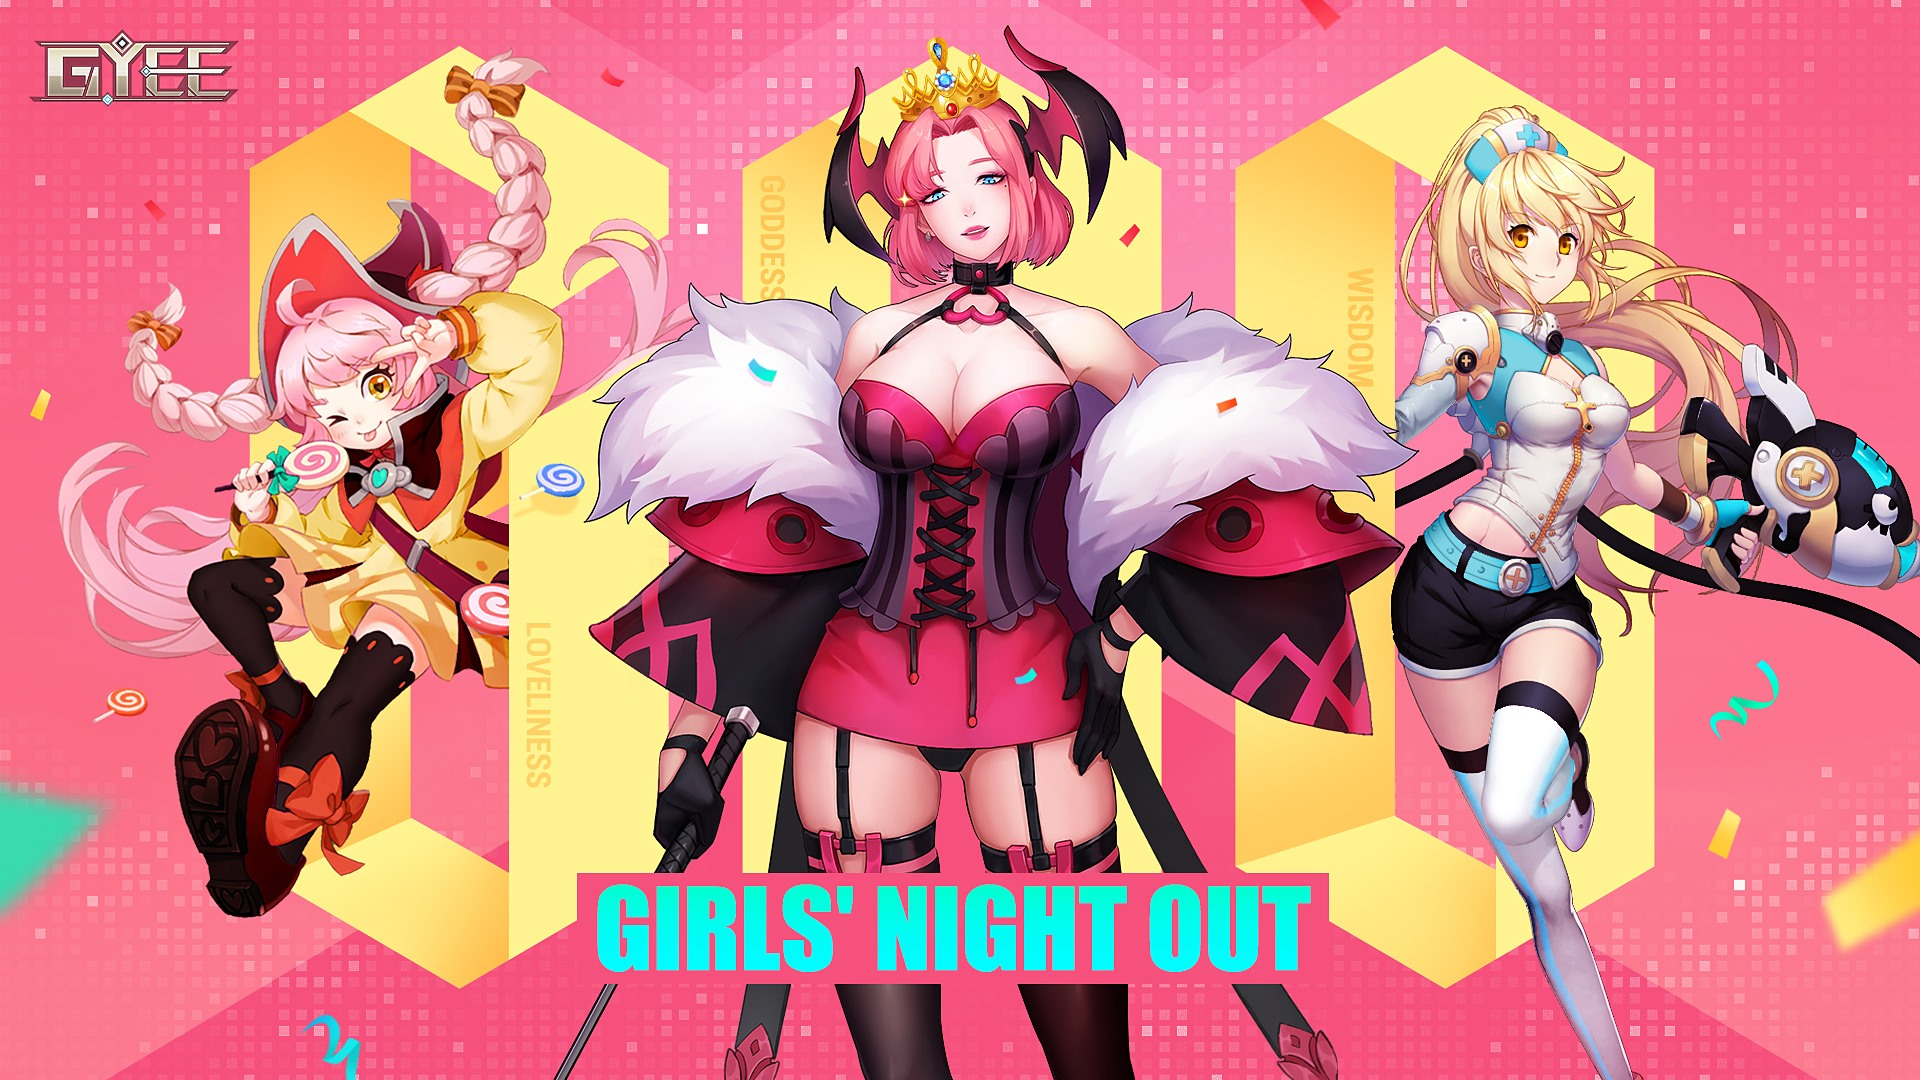 【Event】Girls Night Out Event-89232592_2810977459122475_3135593577988489216_o.jpg